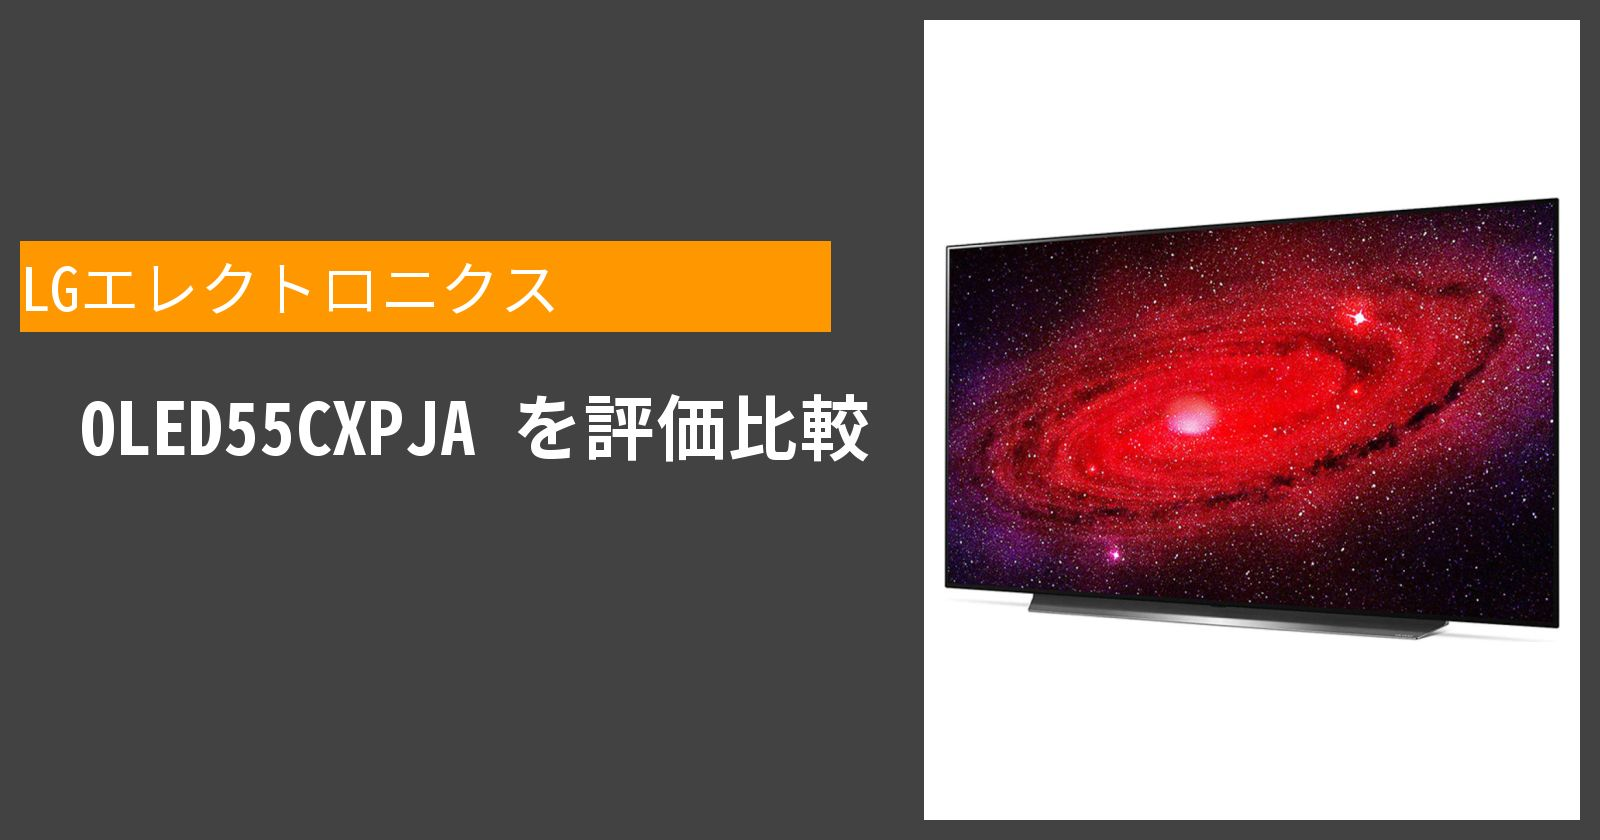 OLED55CXPJAを徹底評価